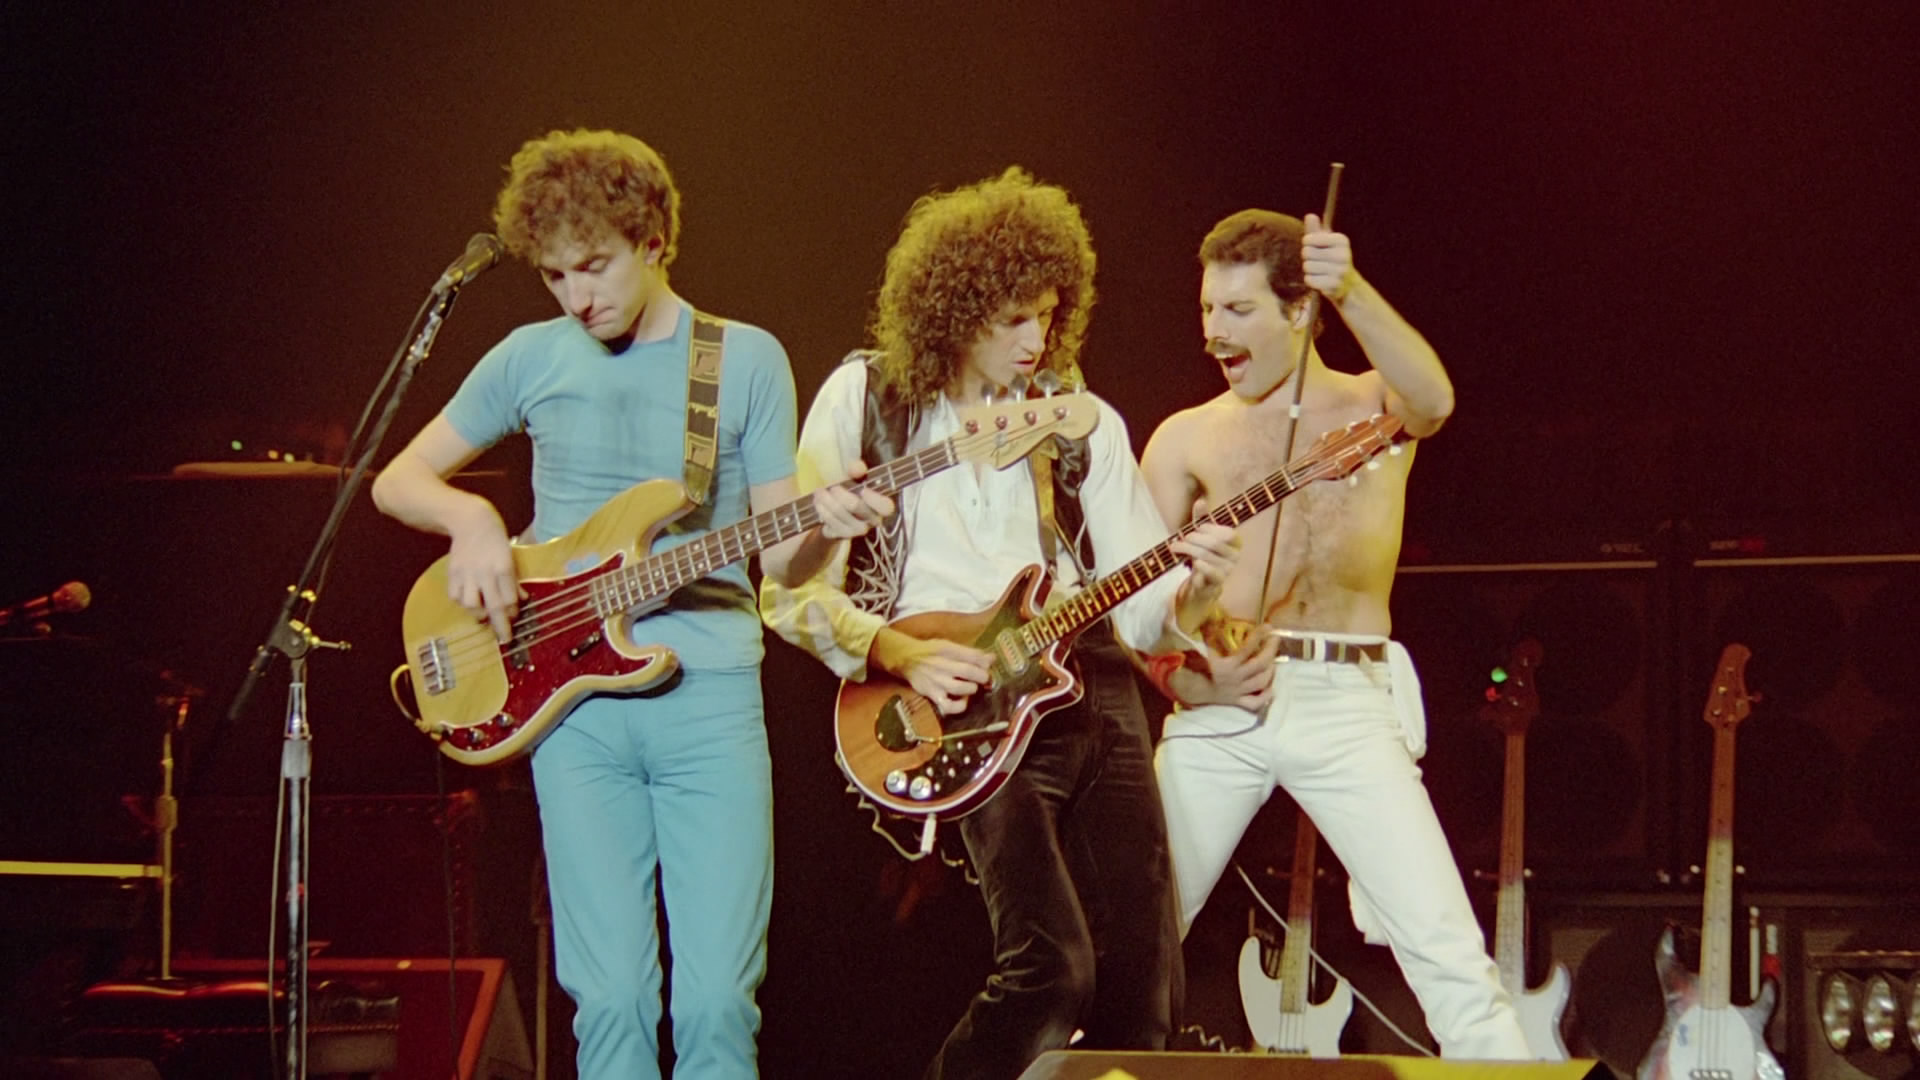 queen-rock-montreal--live-aid-50719751904b5